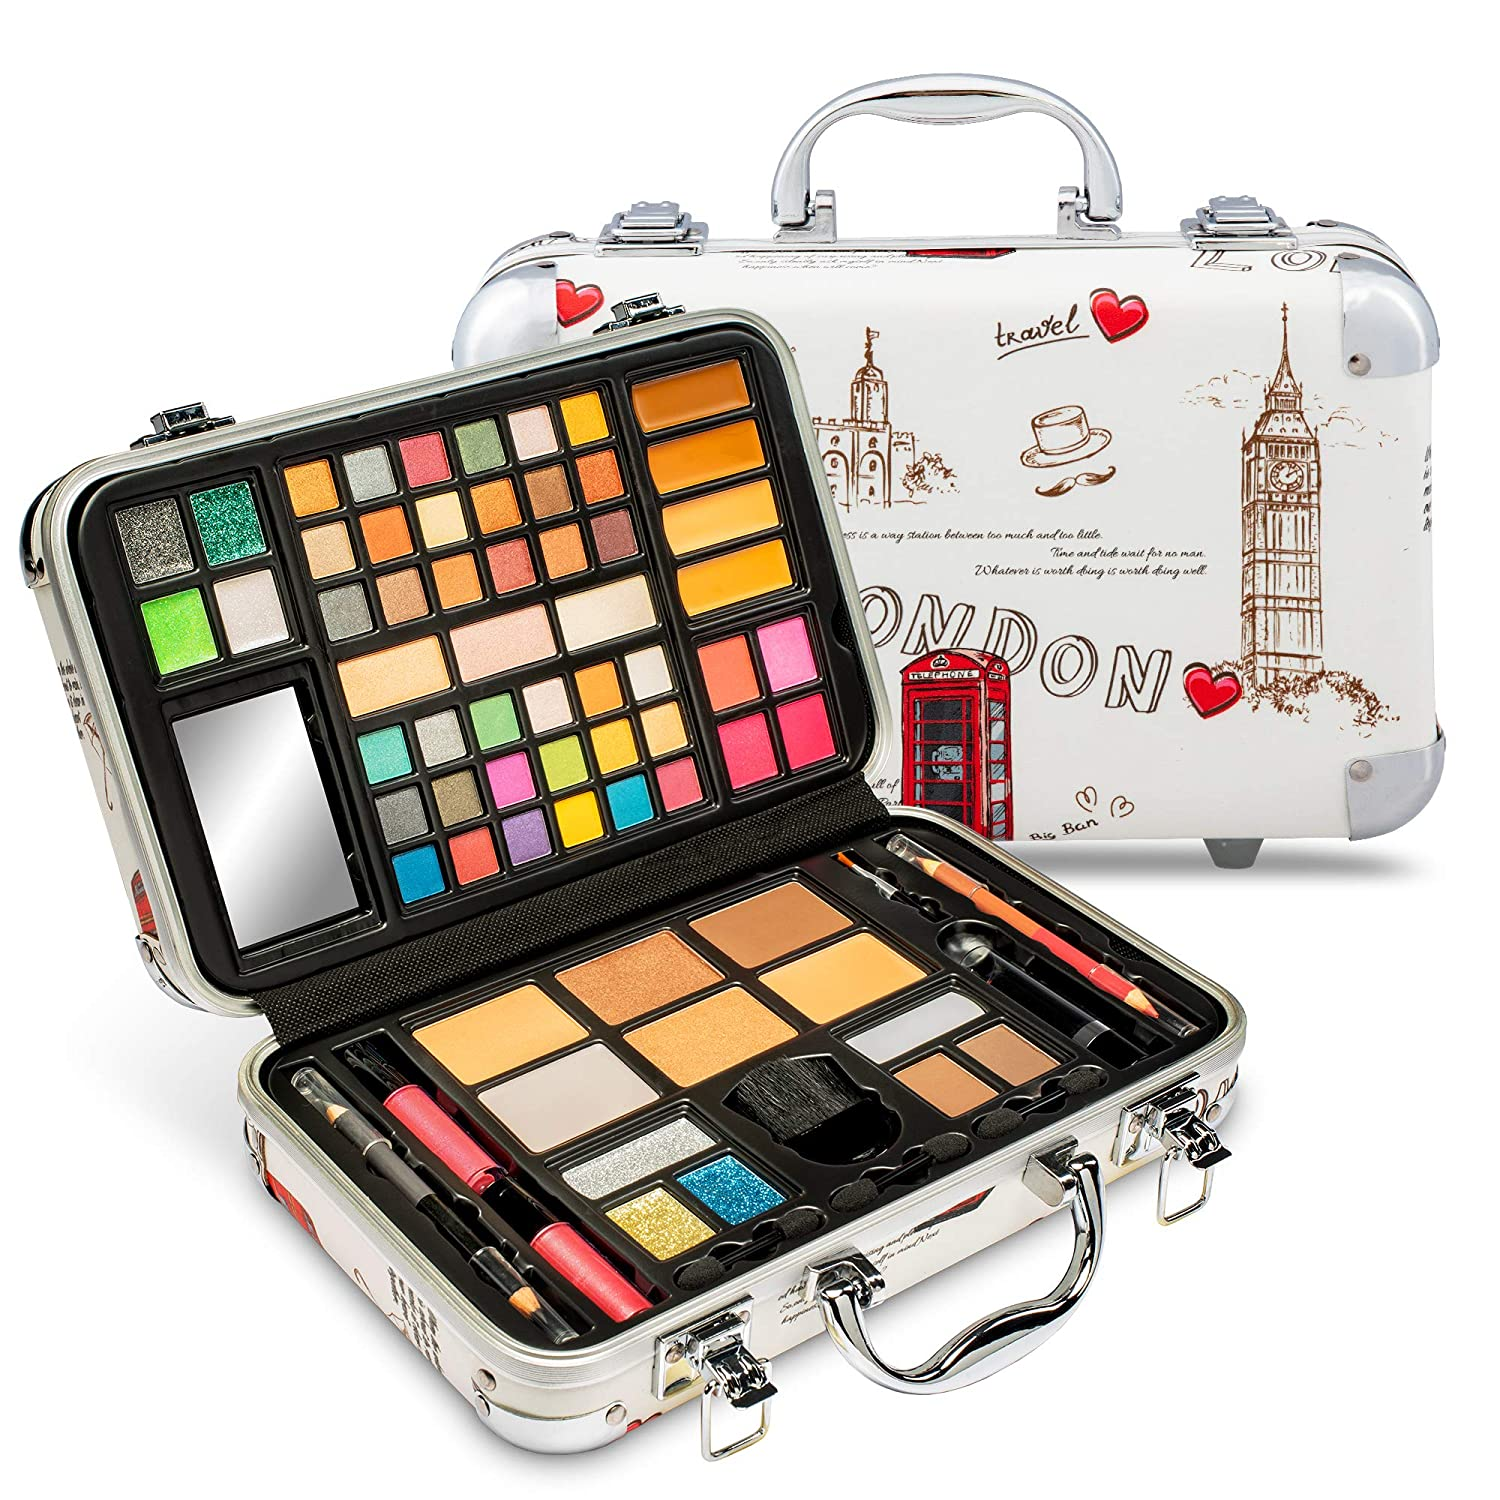 Vokai Makeup Kit Gift Set - London Travel Case 41 Eye Shadows 4 Blushes 5 Bronzers 7 Body Glitters 1 Lip Liner Pencil 1 Eye Liner Pencil 2 Lip Gloss Wands 1 Lipstick 5 Concealers 1 Brow Wax 1 Mirror